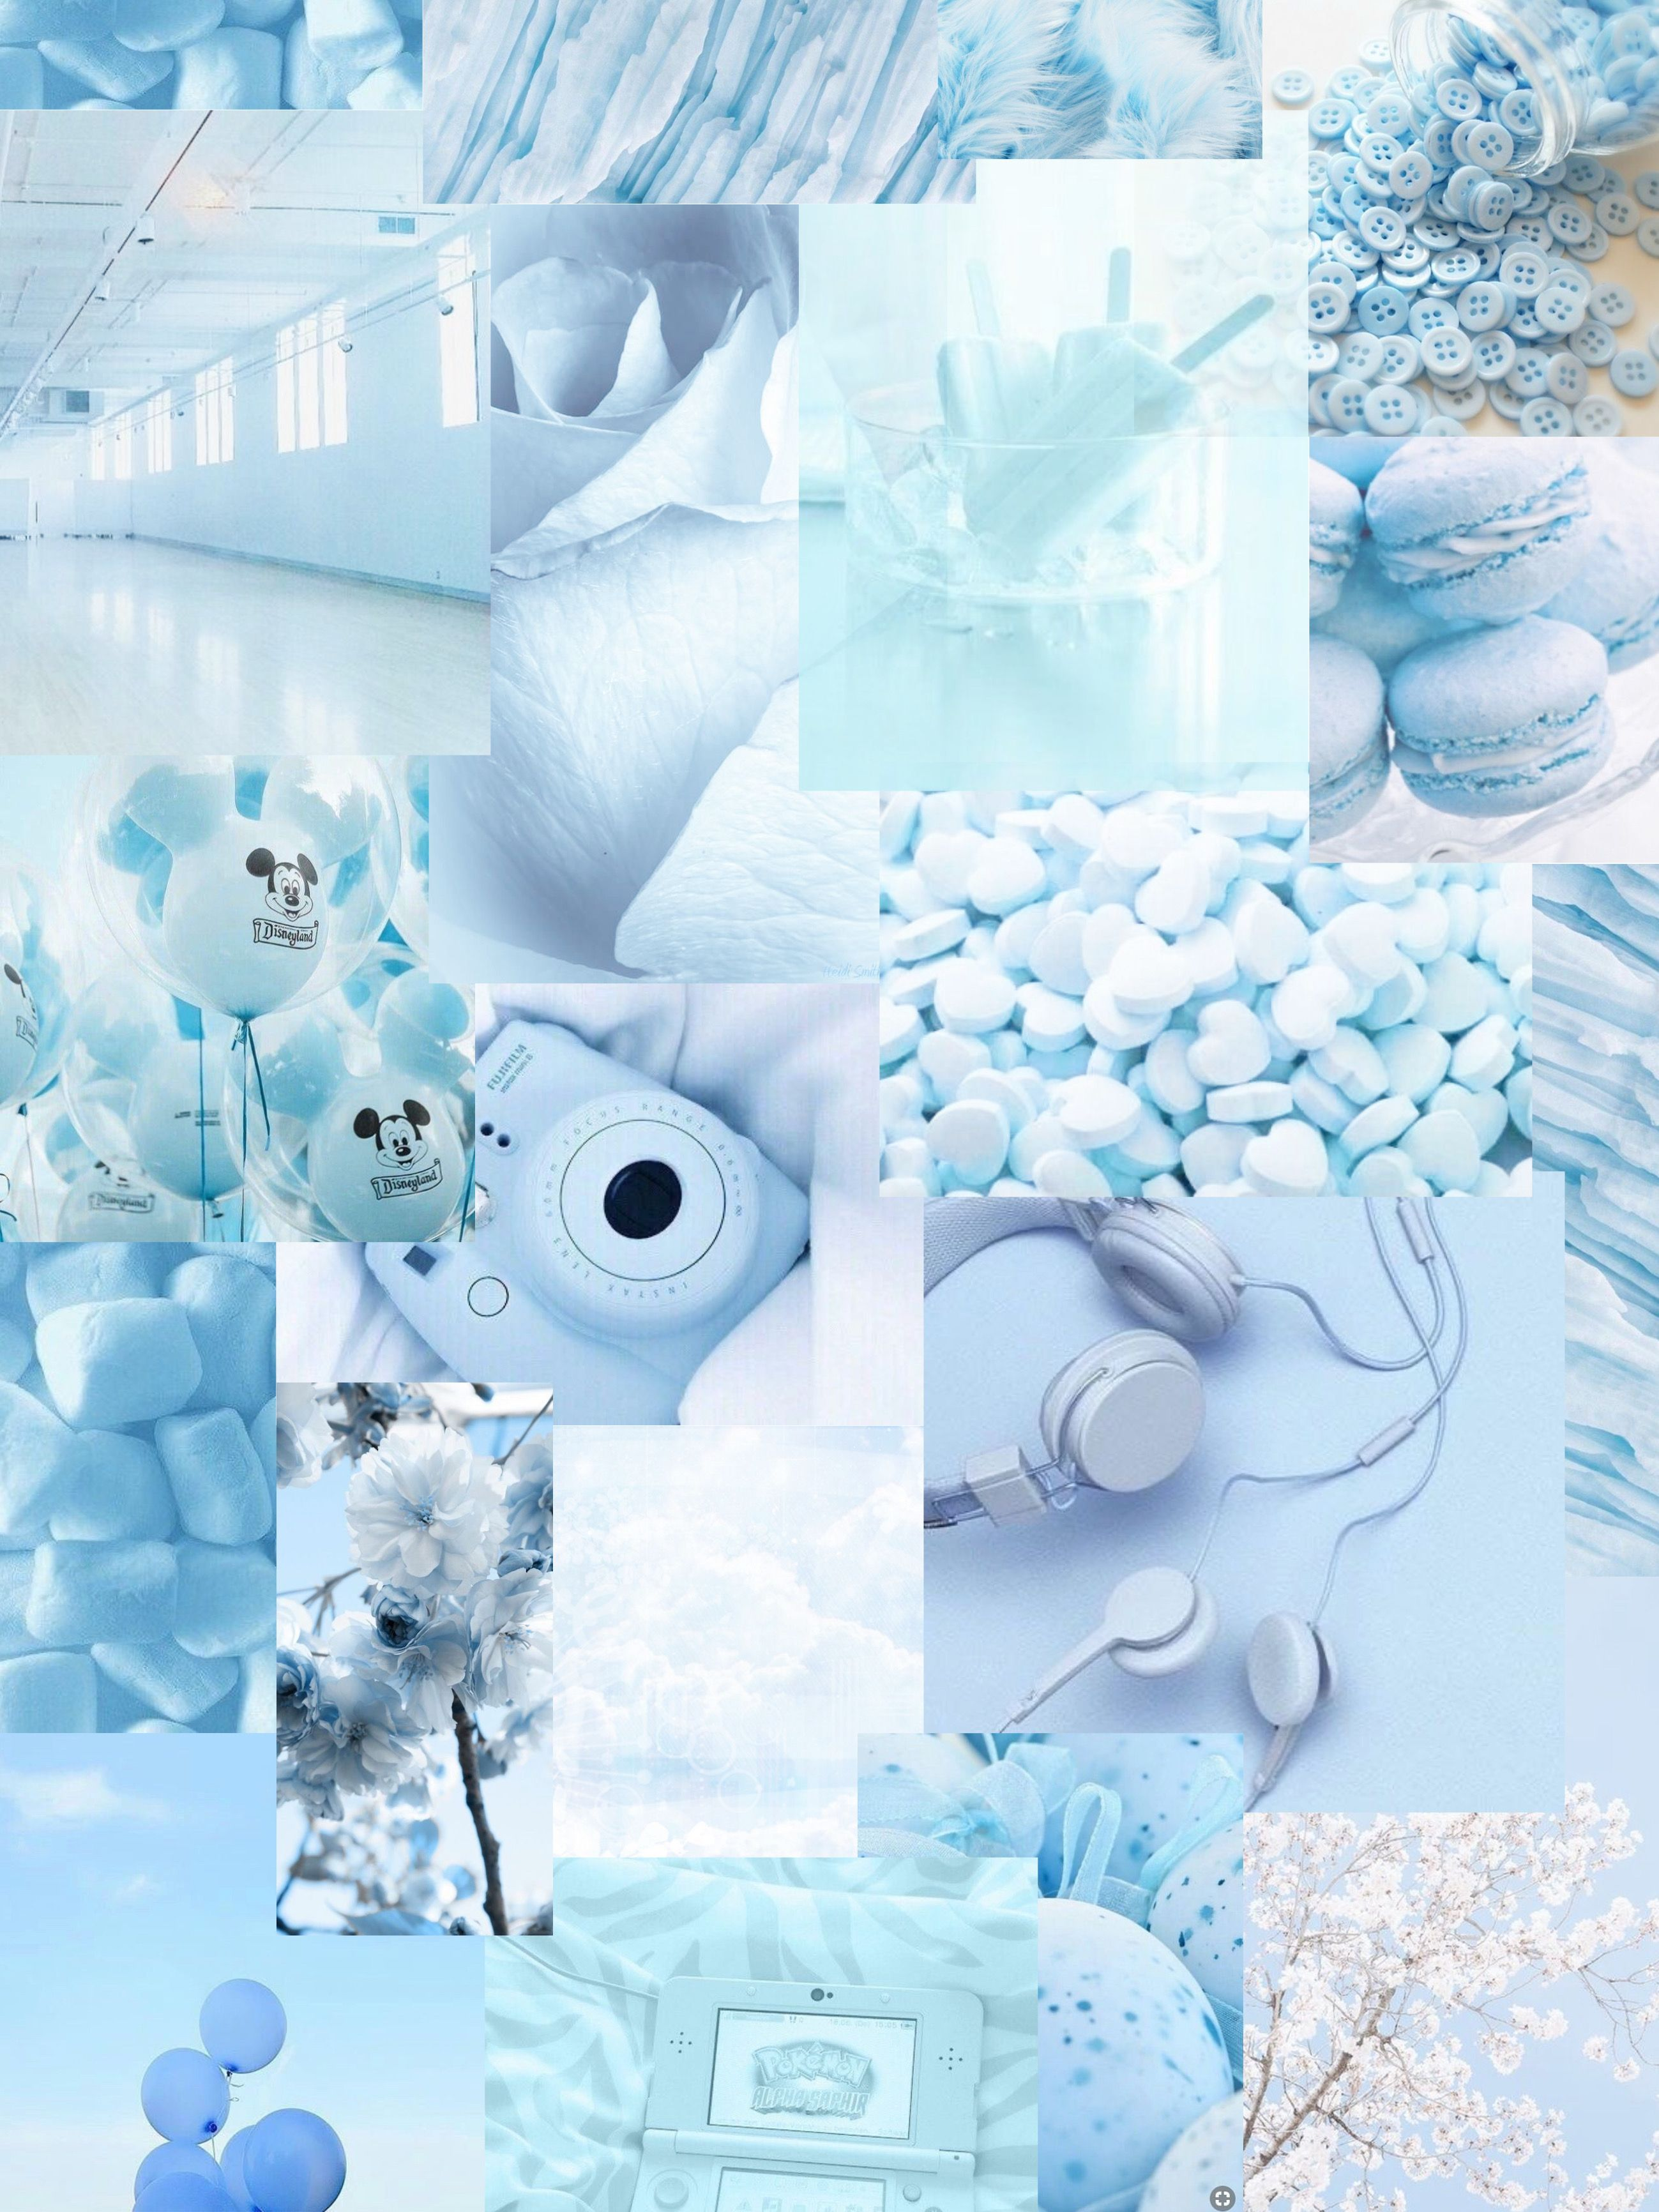 Freetoedit Blue White Aesthetic Background Wallpaper Babyblue Skyblur Balloons Flowe In 2021 Baby Blue Wallpaper Baby Blue Aesthetic Blue And White Wallpaper